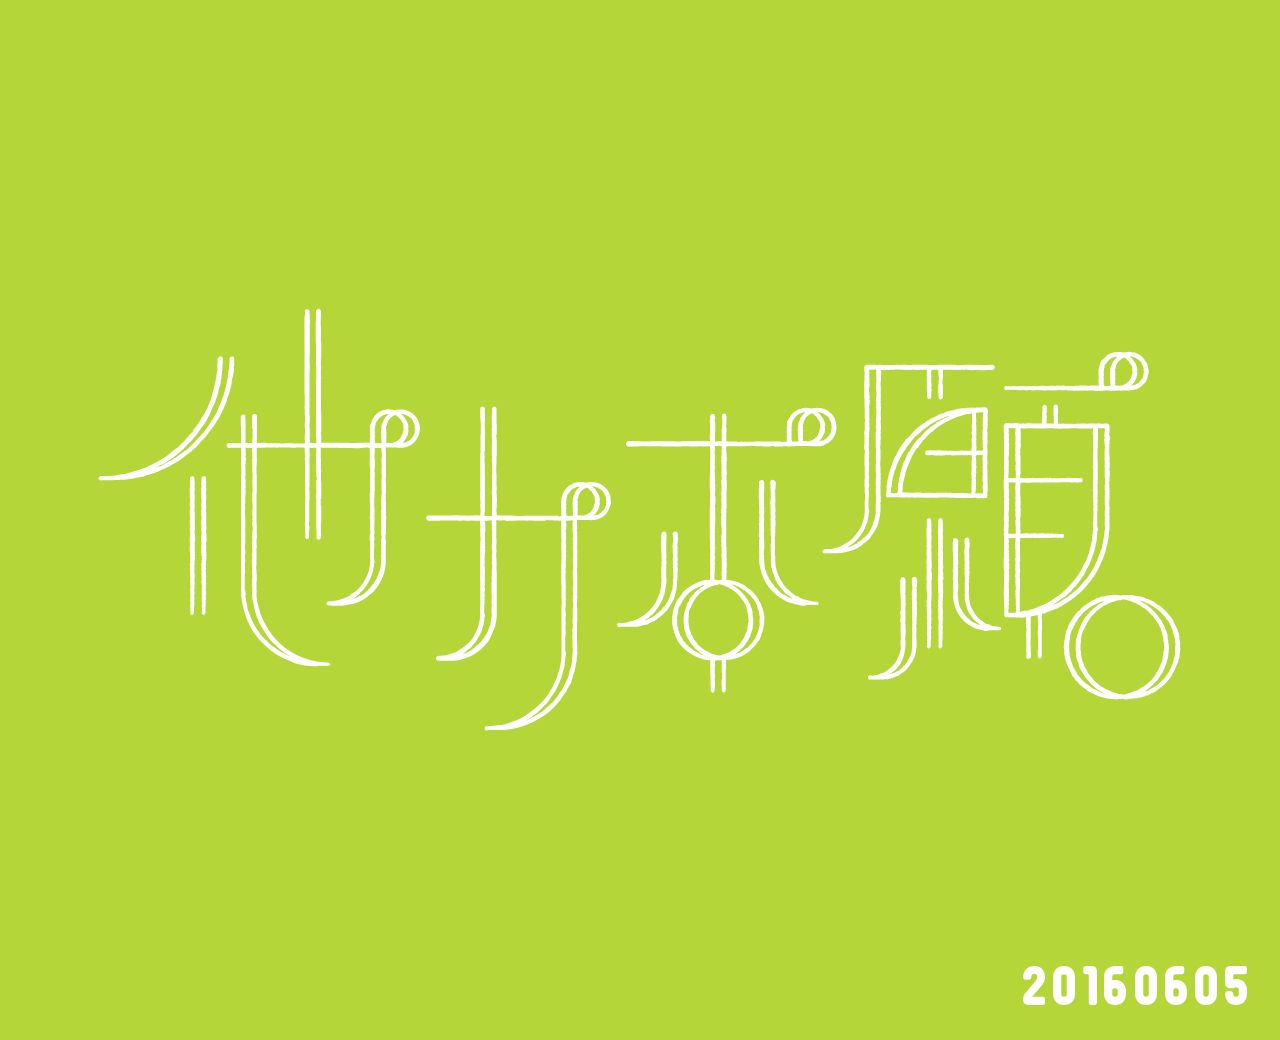 s20160605.png